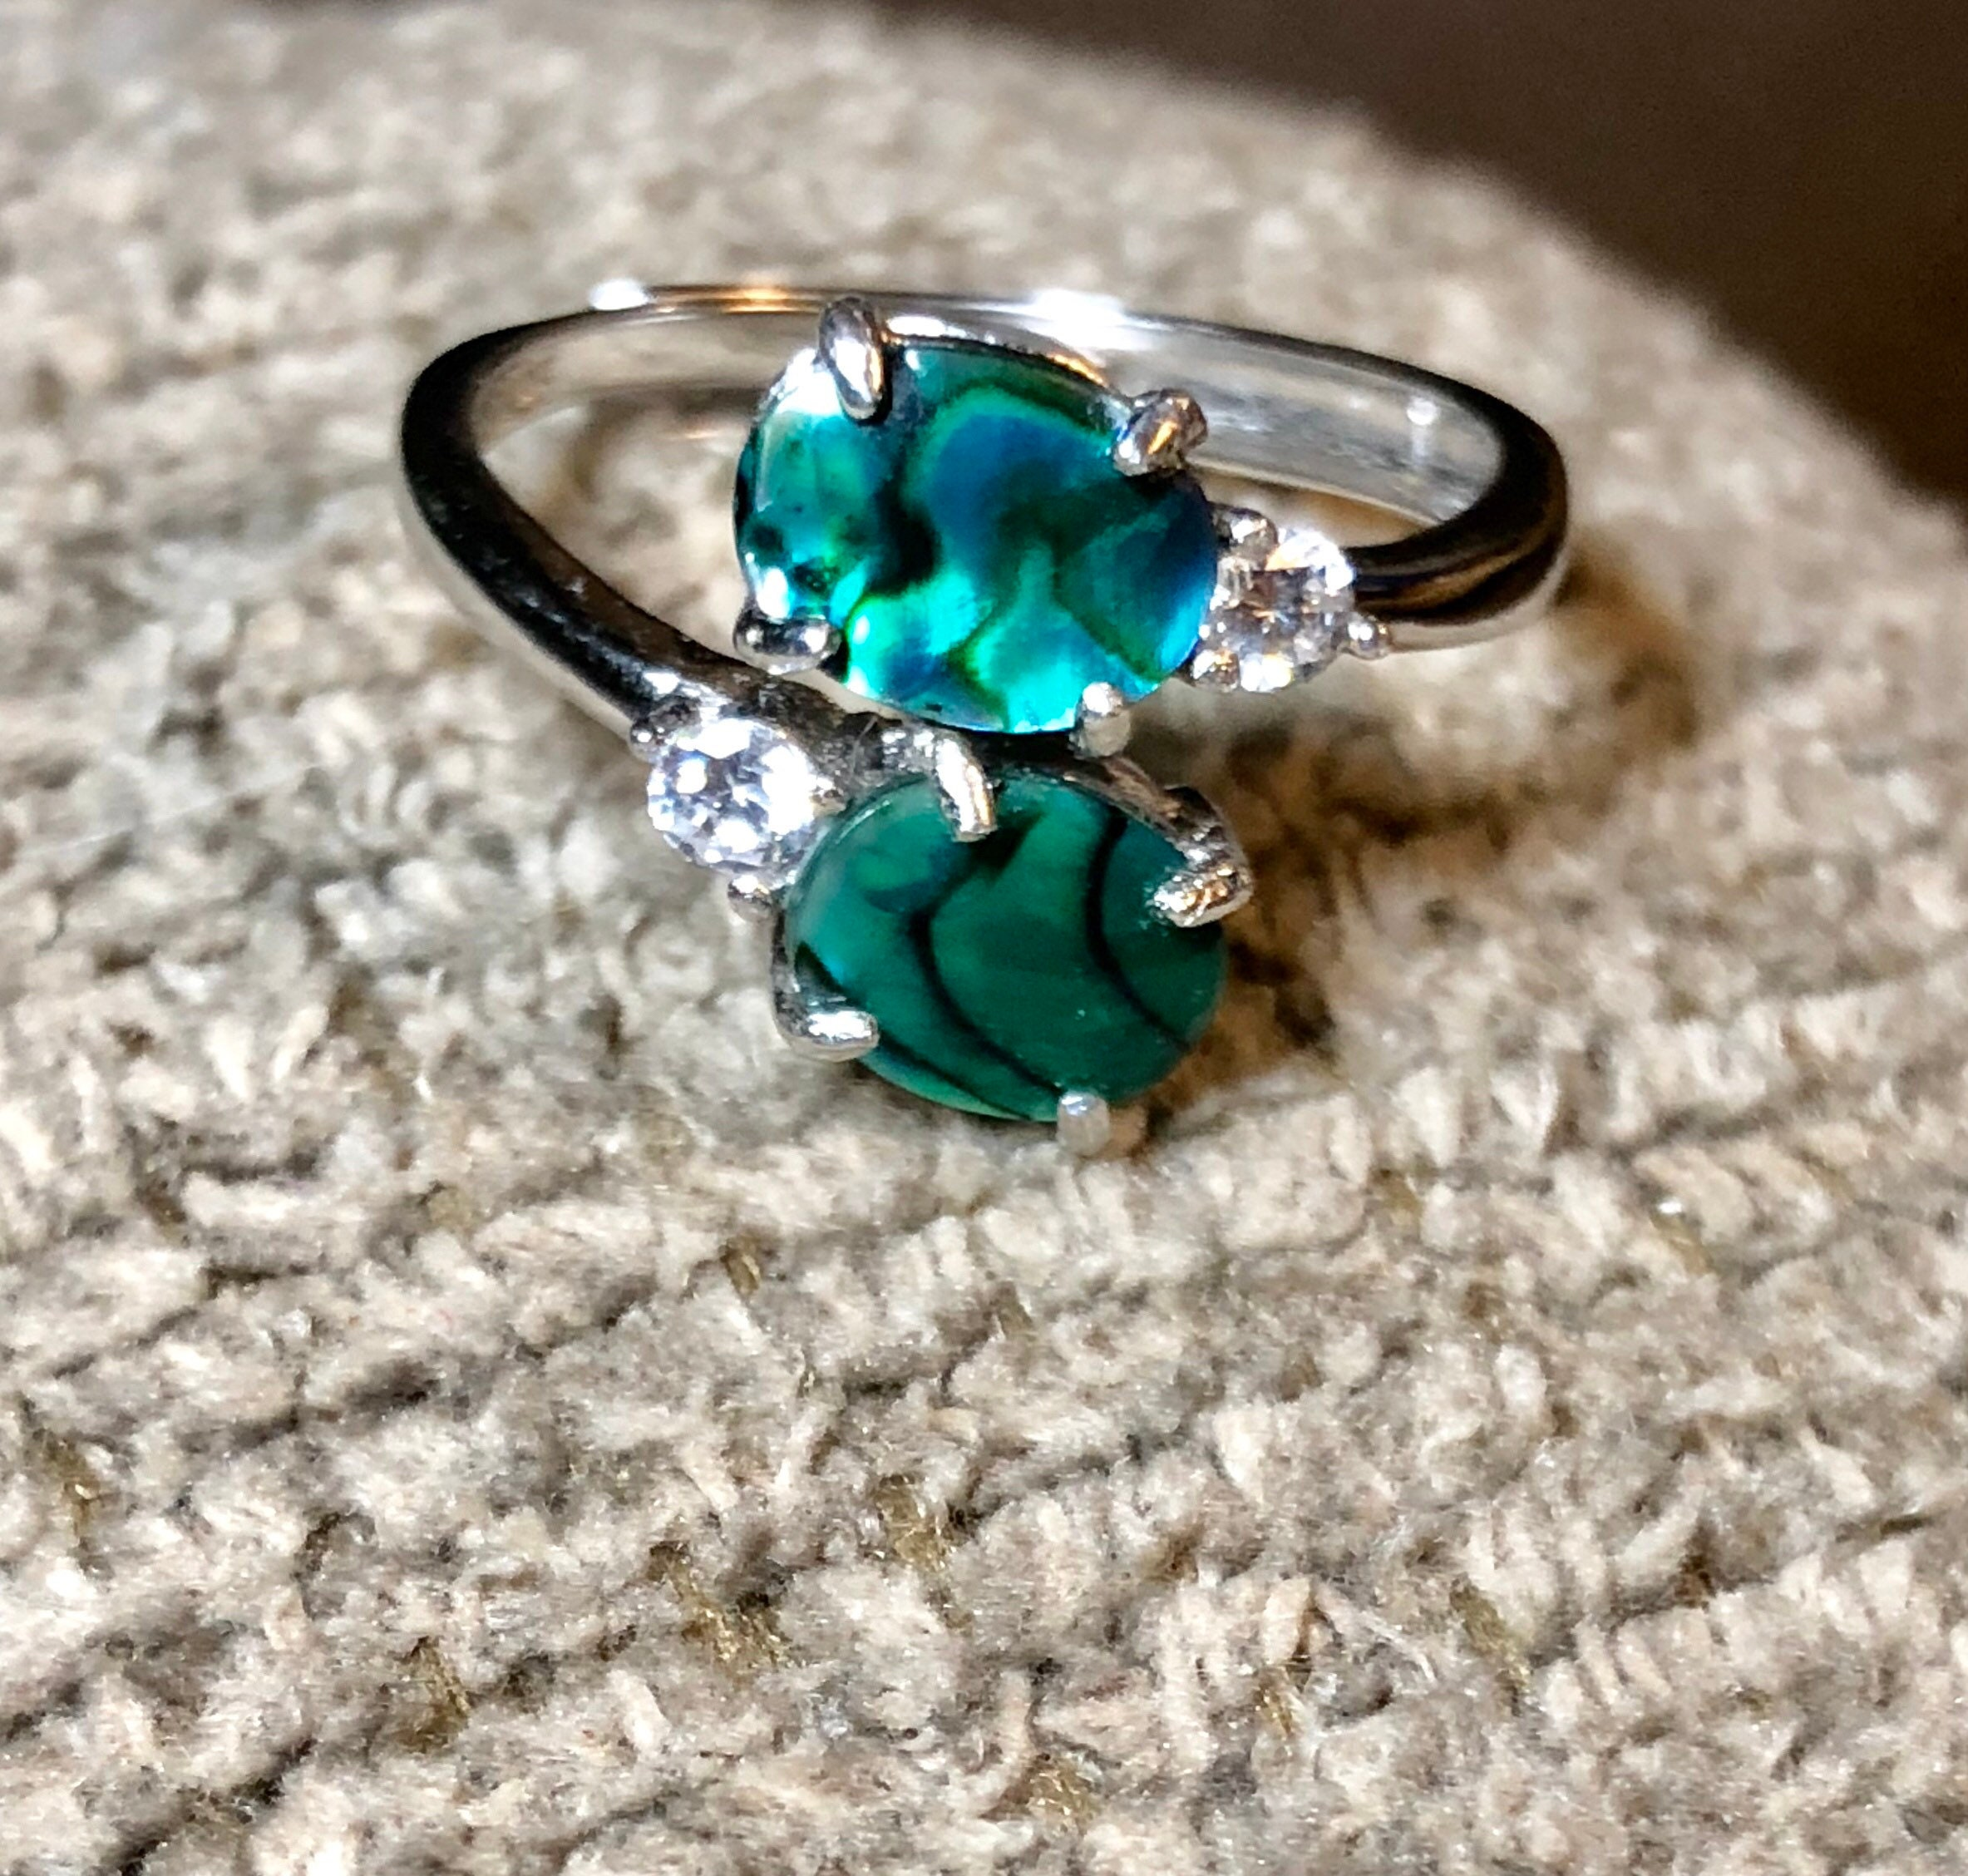 orders silver jewelry free rings heart abalone over shell on thailand watches engagement overstock handmade ring sterling sweet product shipping